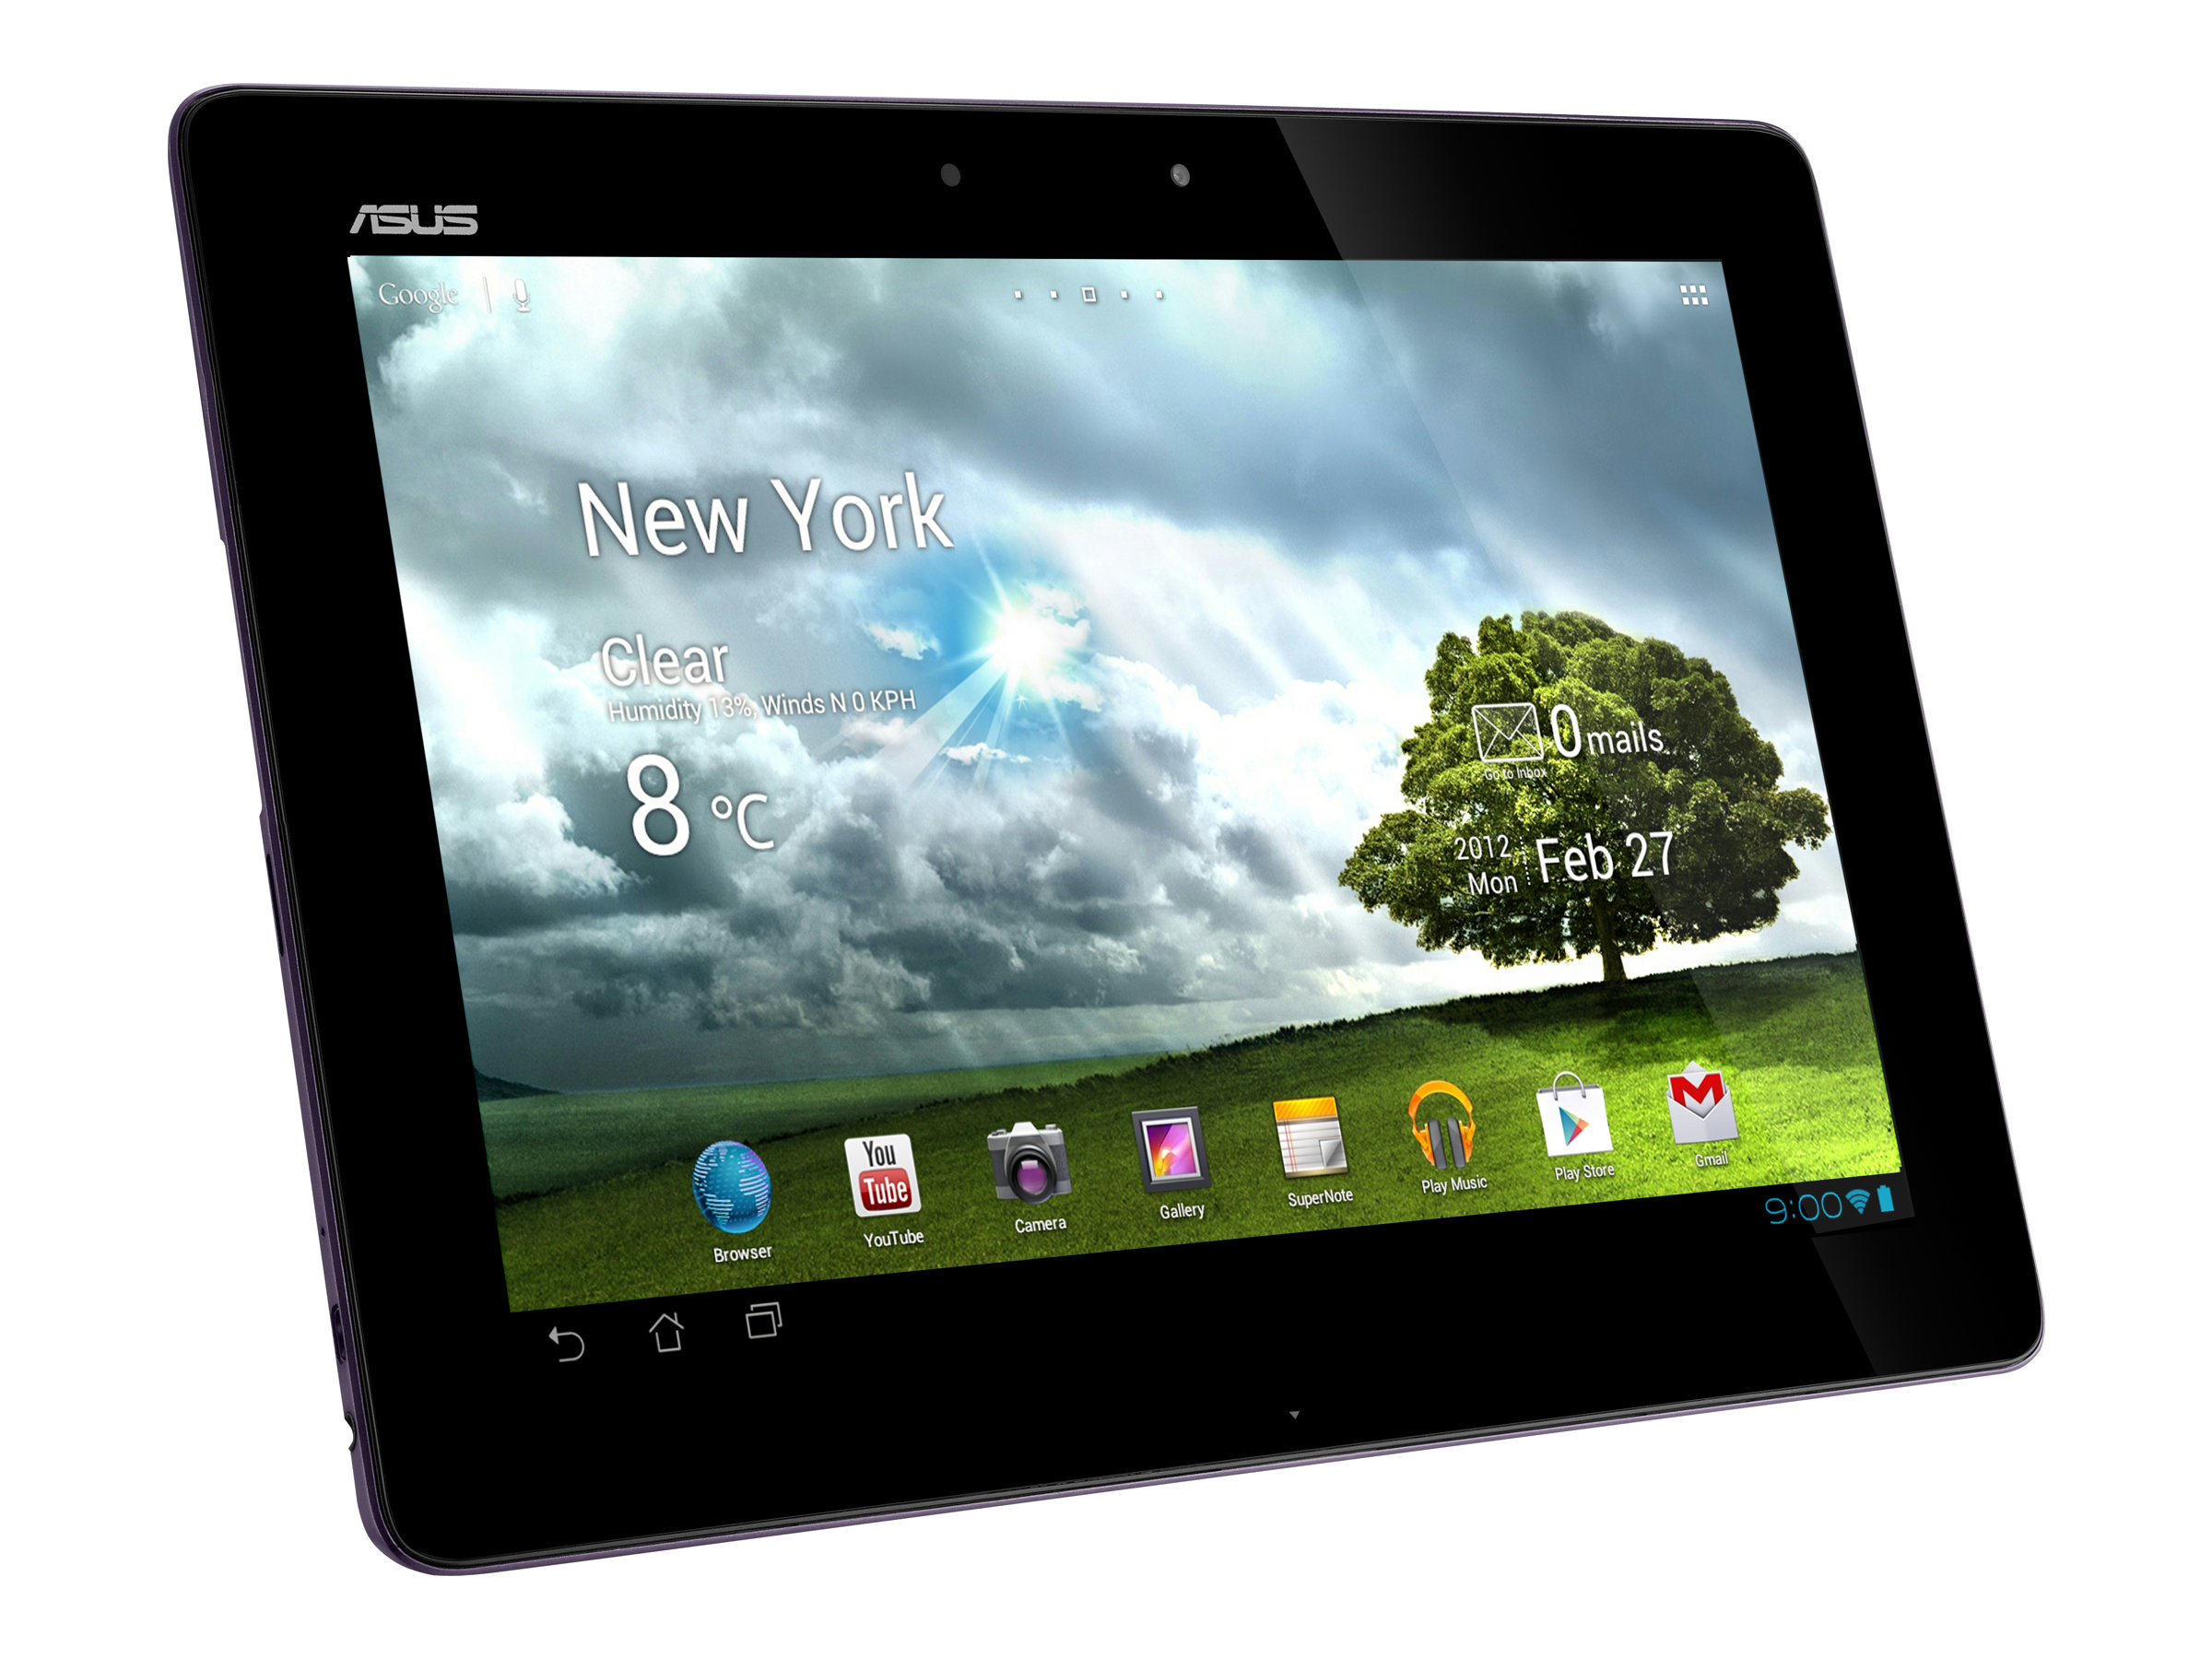 "Asus **Factory Refurbished** Asus TF700T-B1-GR Transformer 10.1"" Tablet - NVIDIA Tegra 3 1.6GHz 32GB Android 4.0"